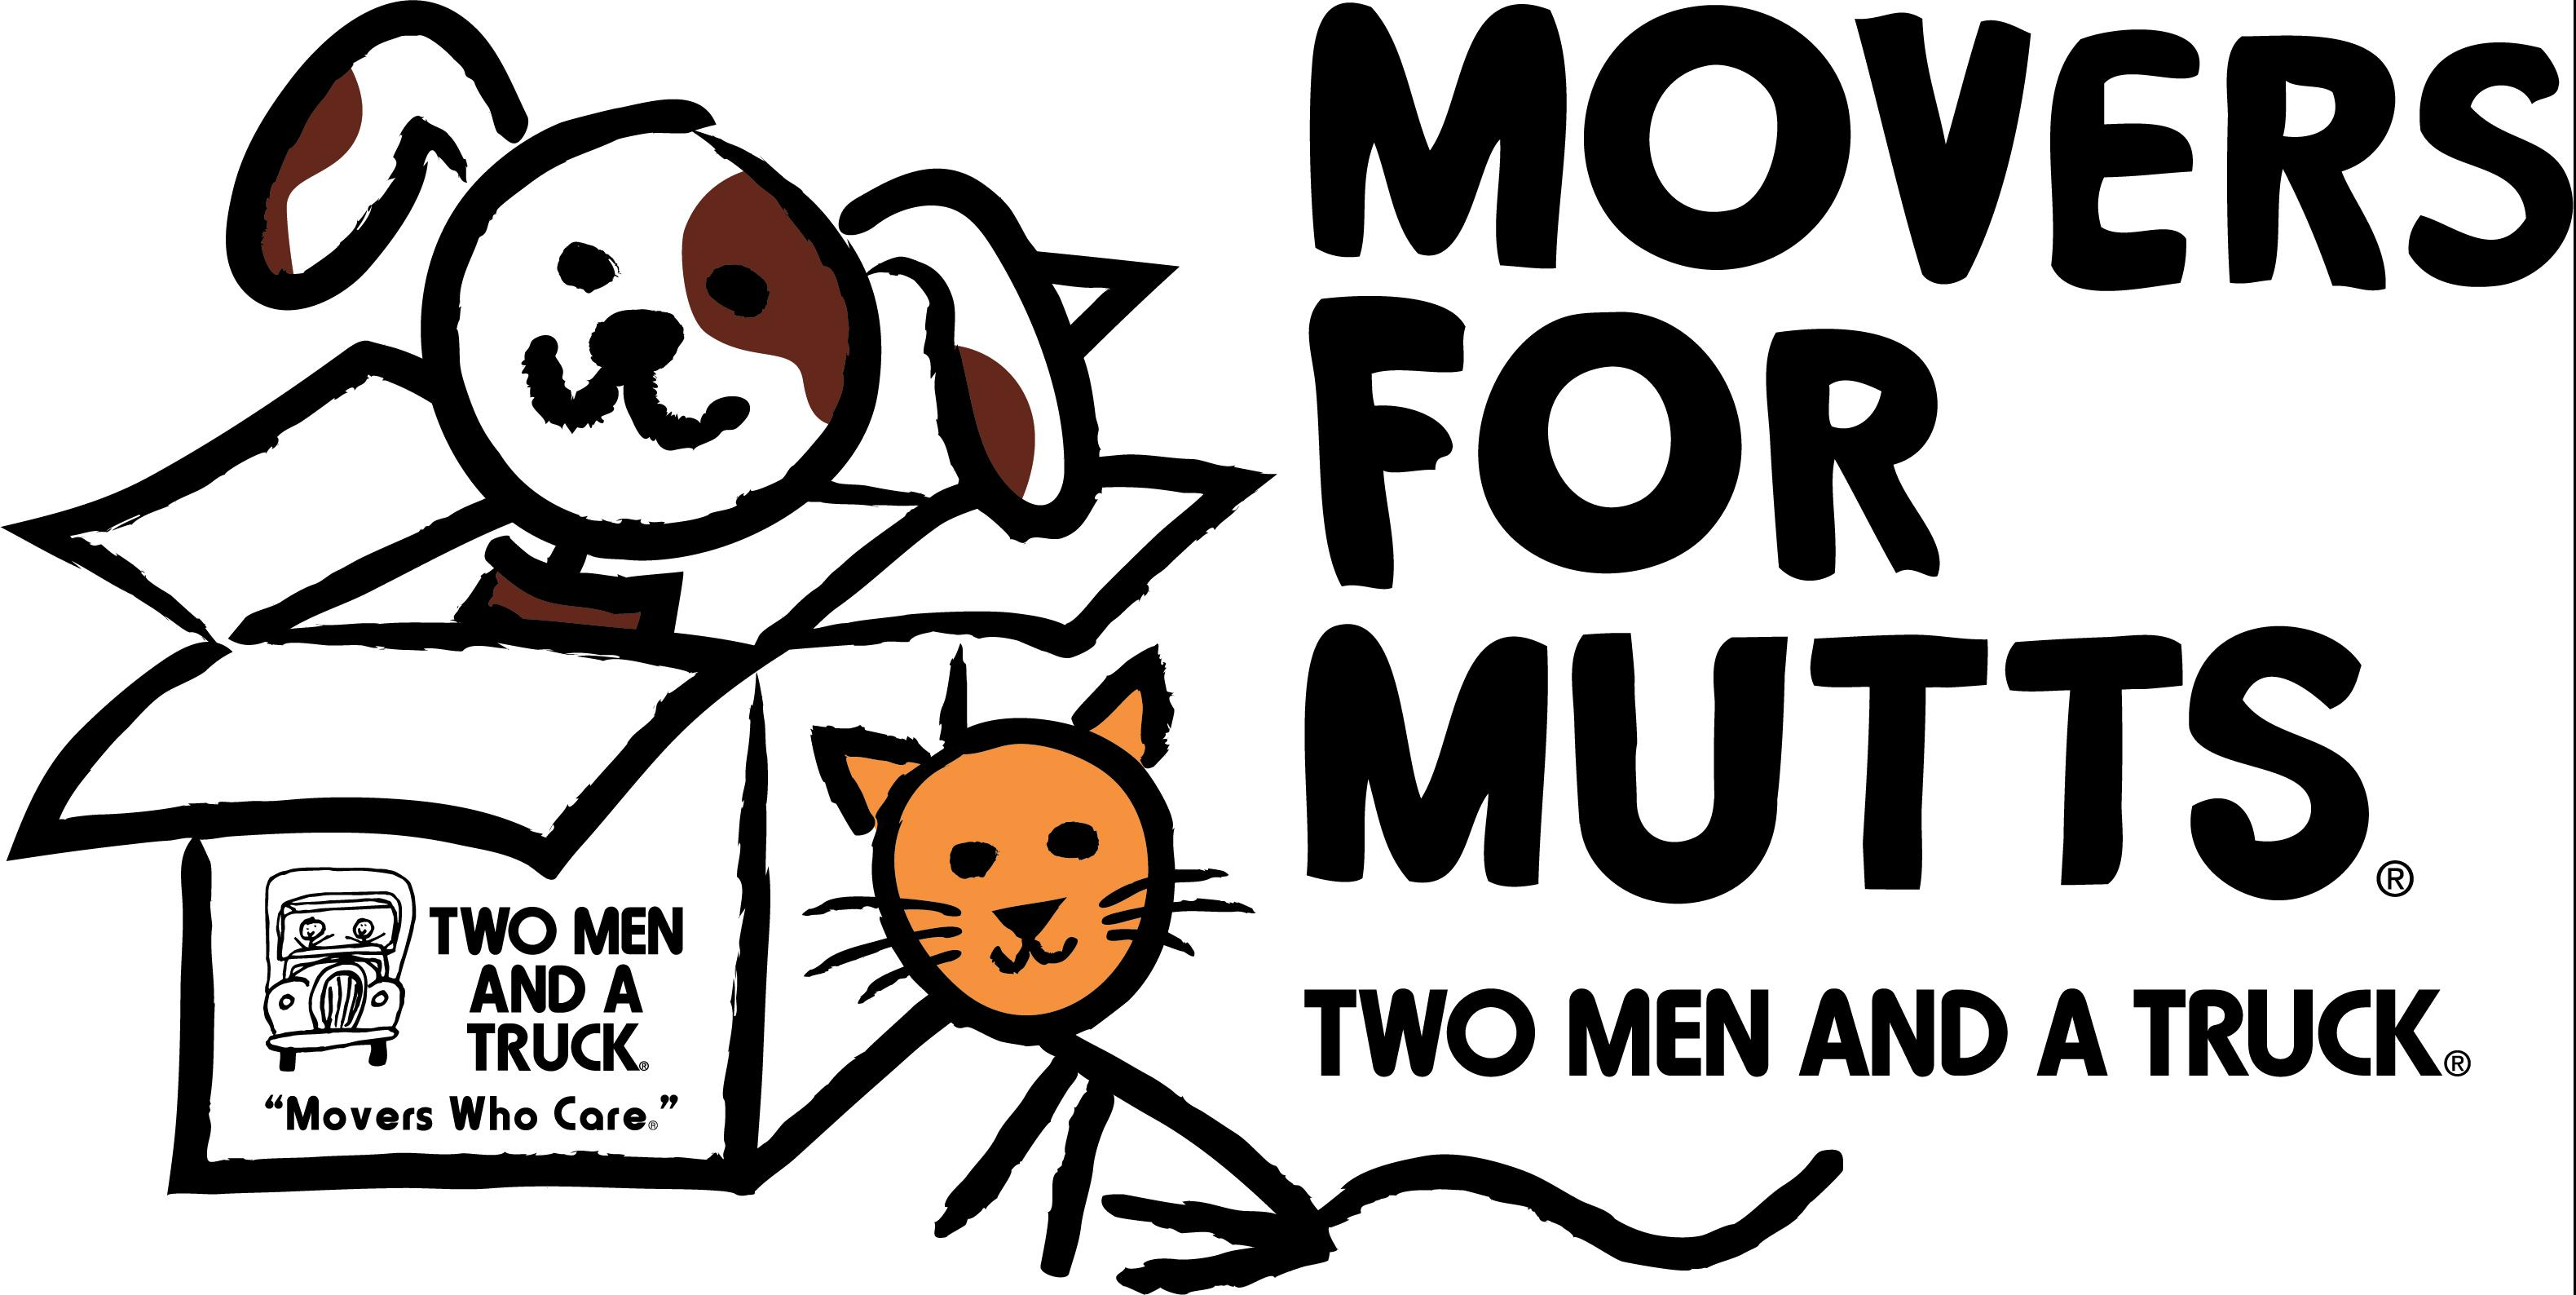 Movers for Mutts Final